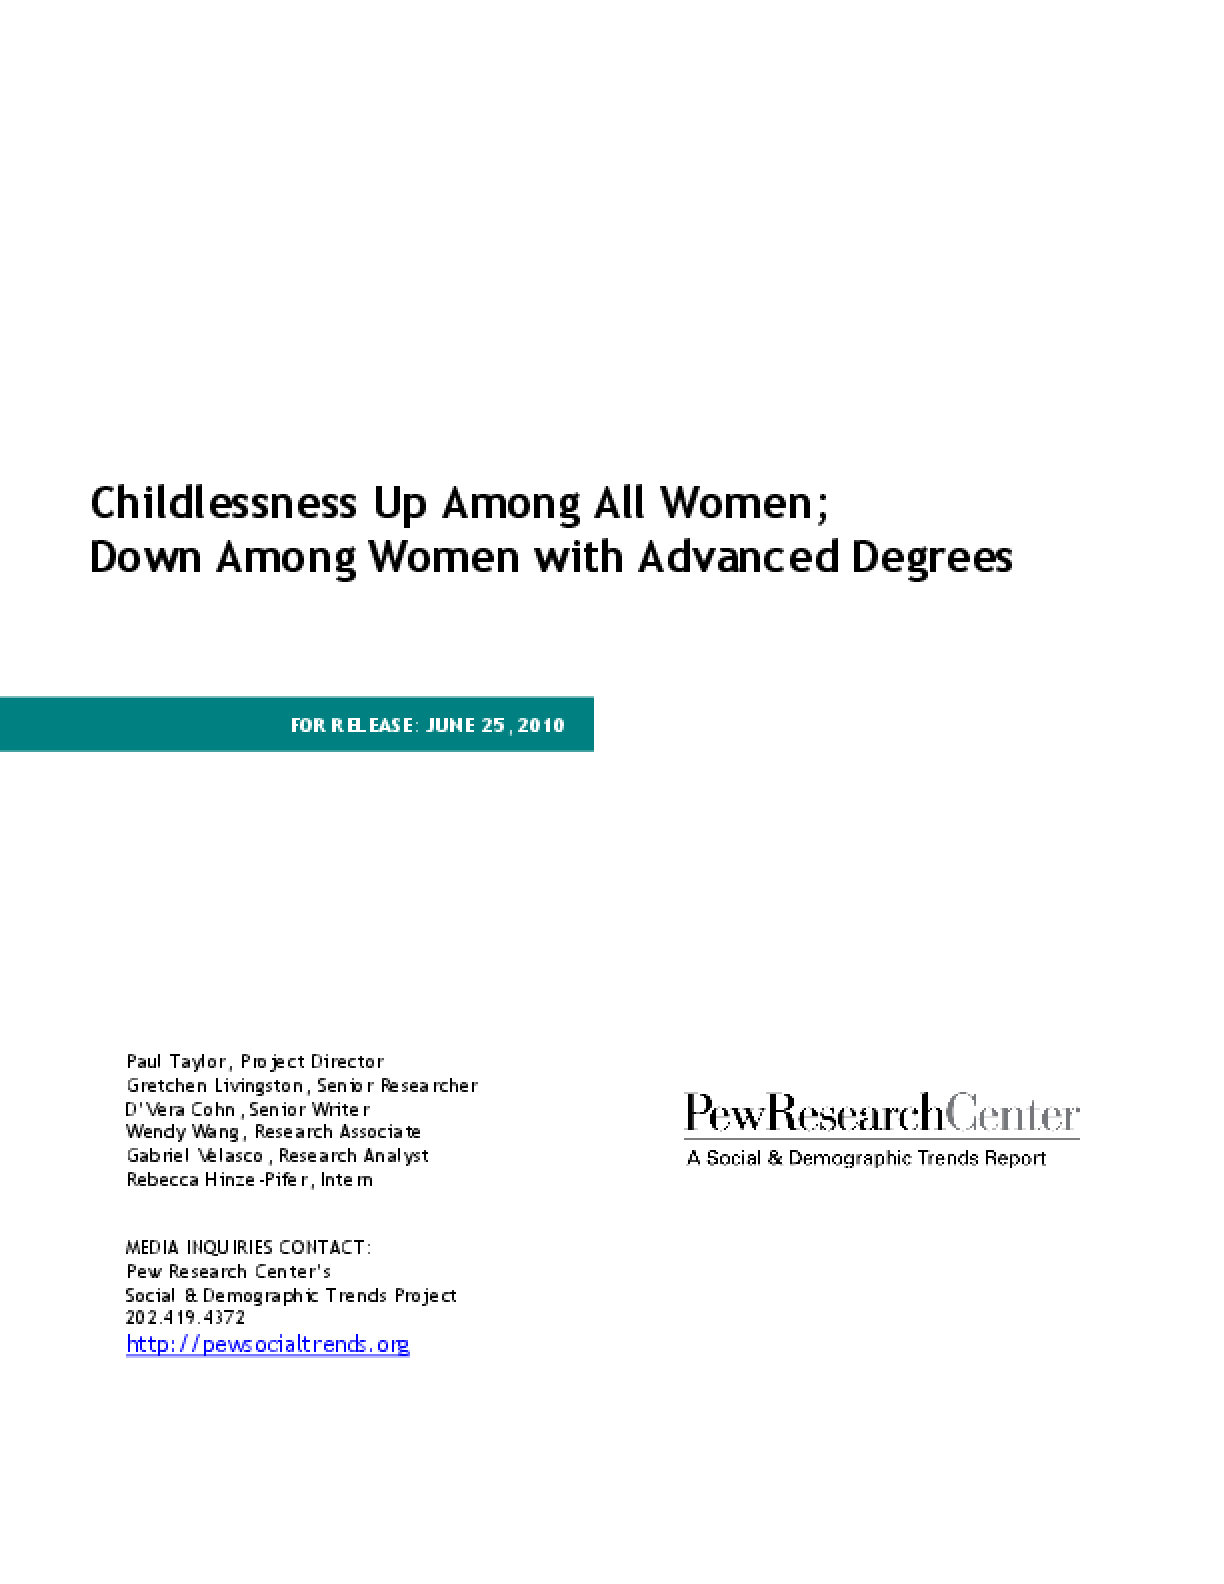 Childlessness Up Among All Women; Down Among Women With Advanced Degrees